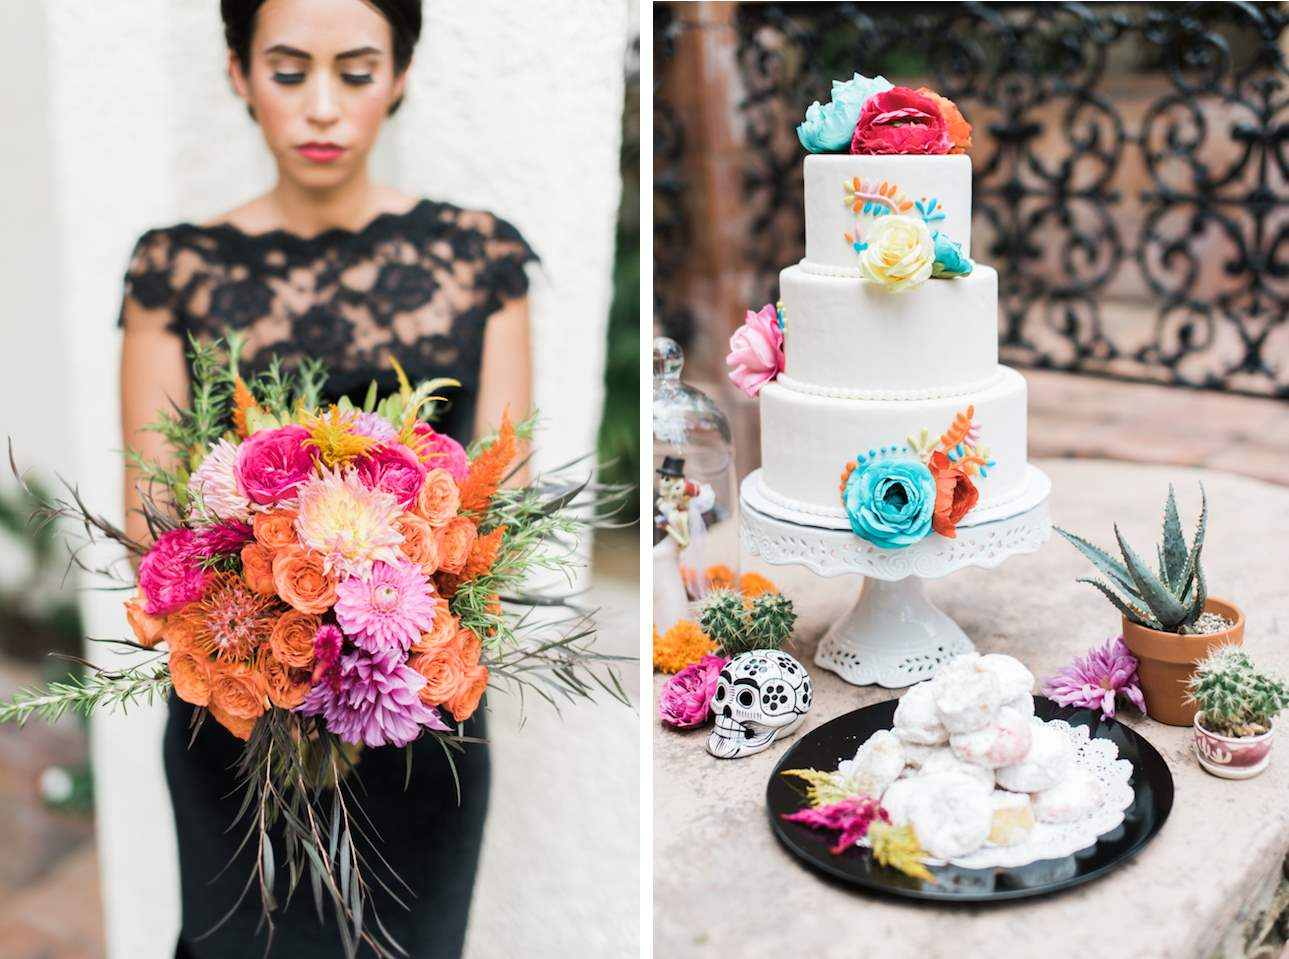 COCO Wedding Ideas - How to Have a \